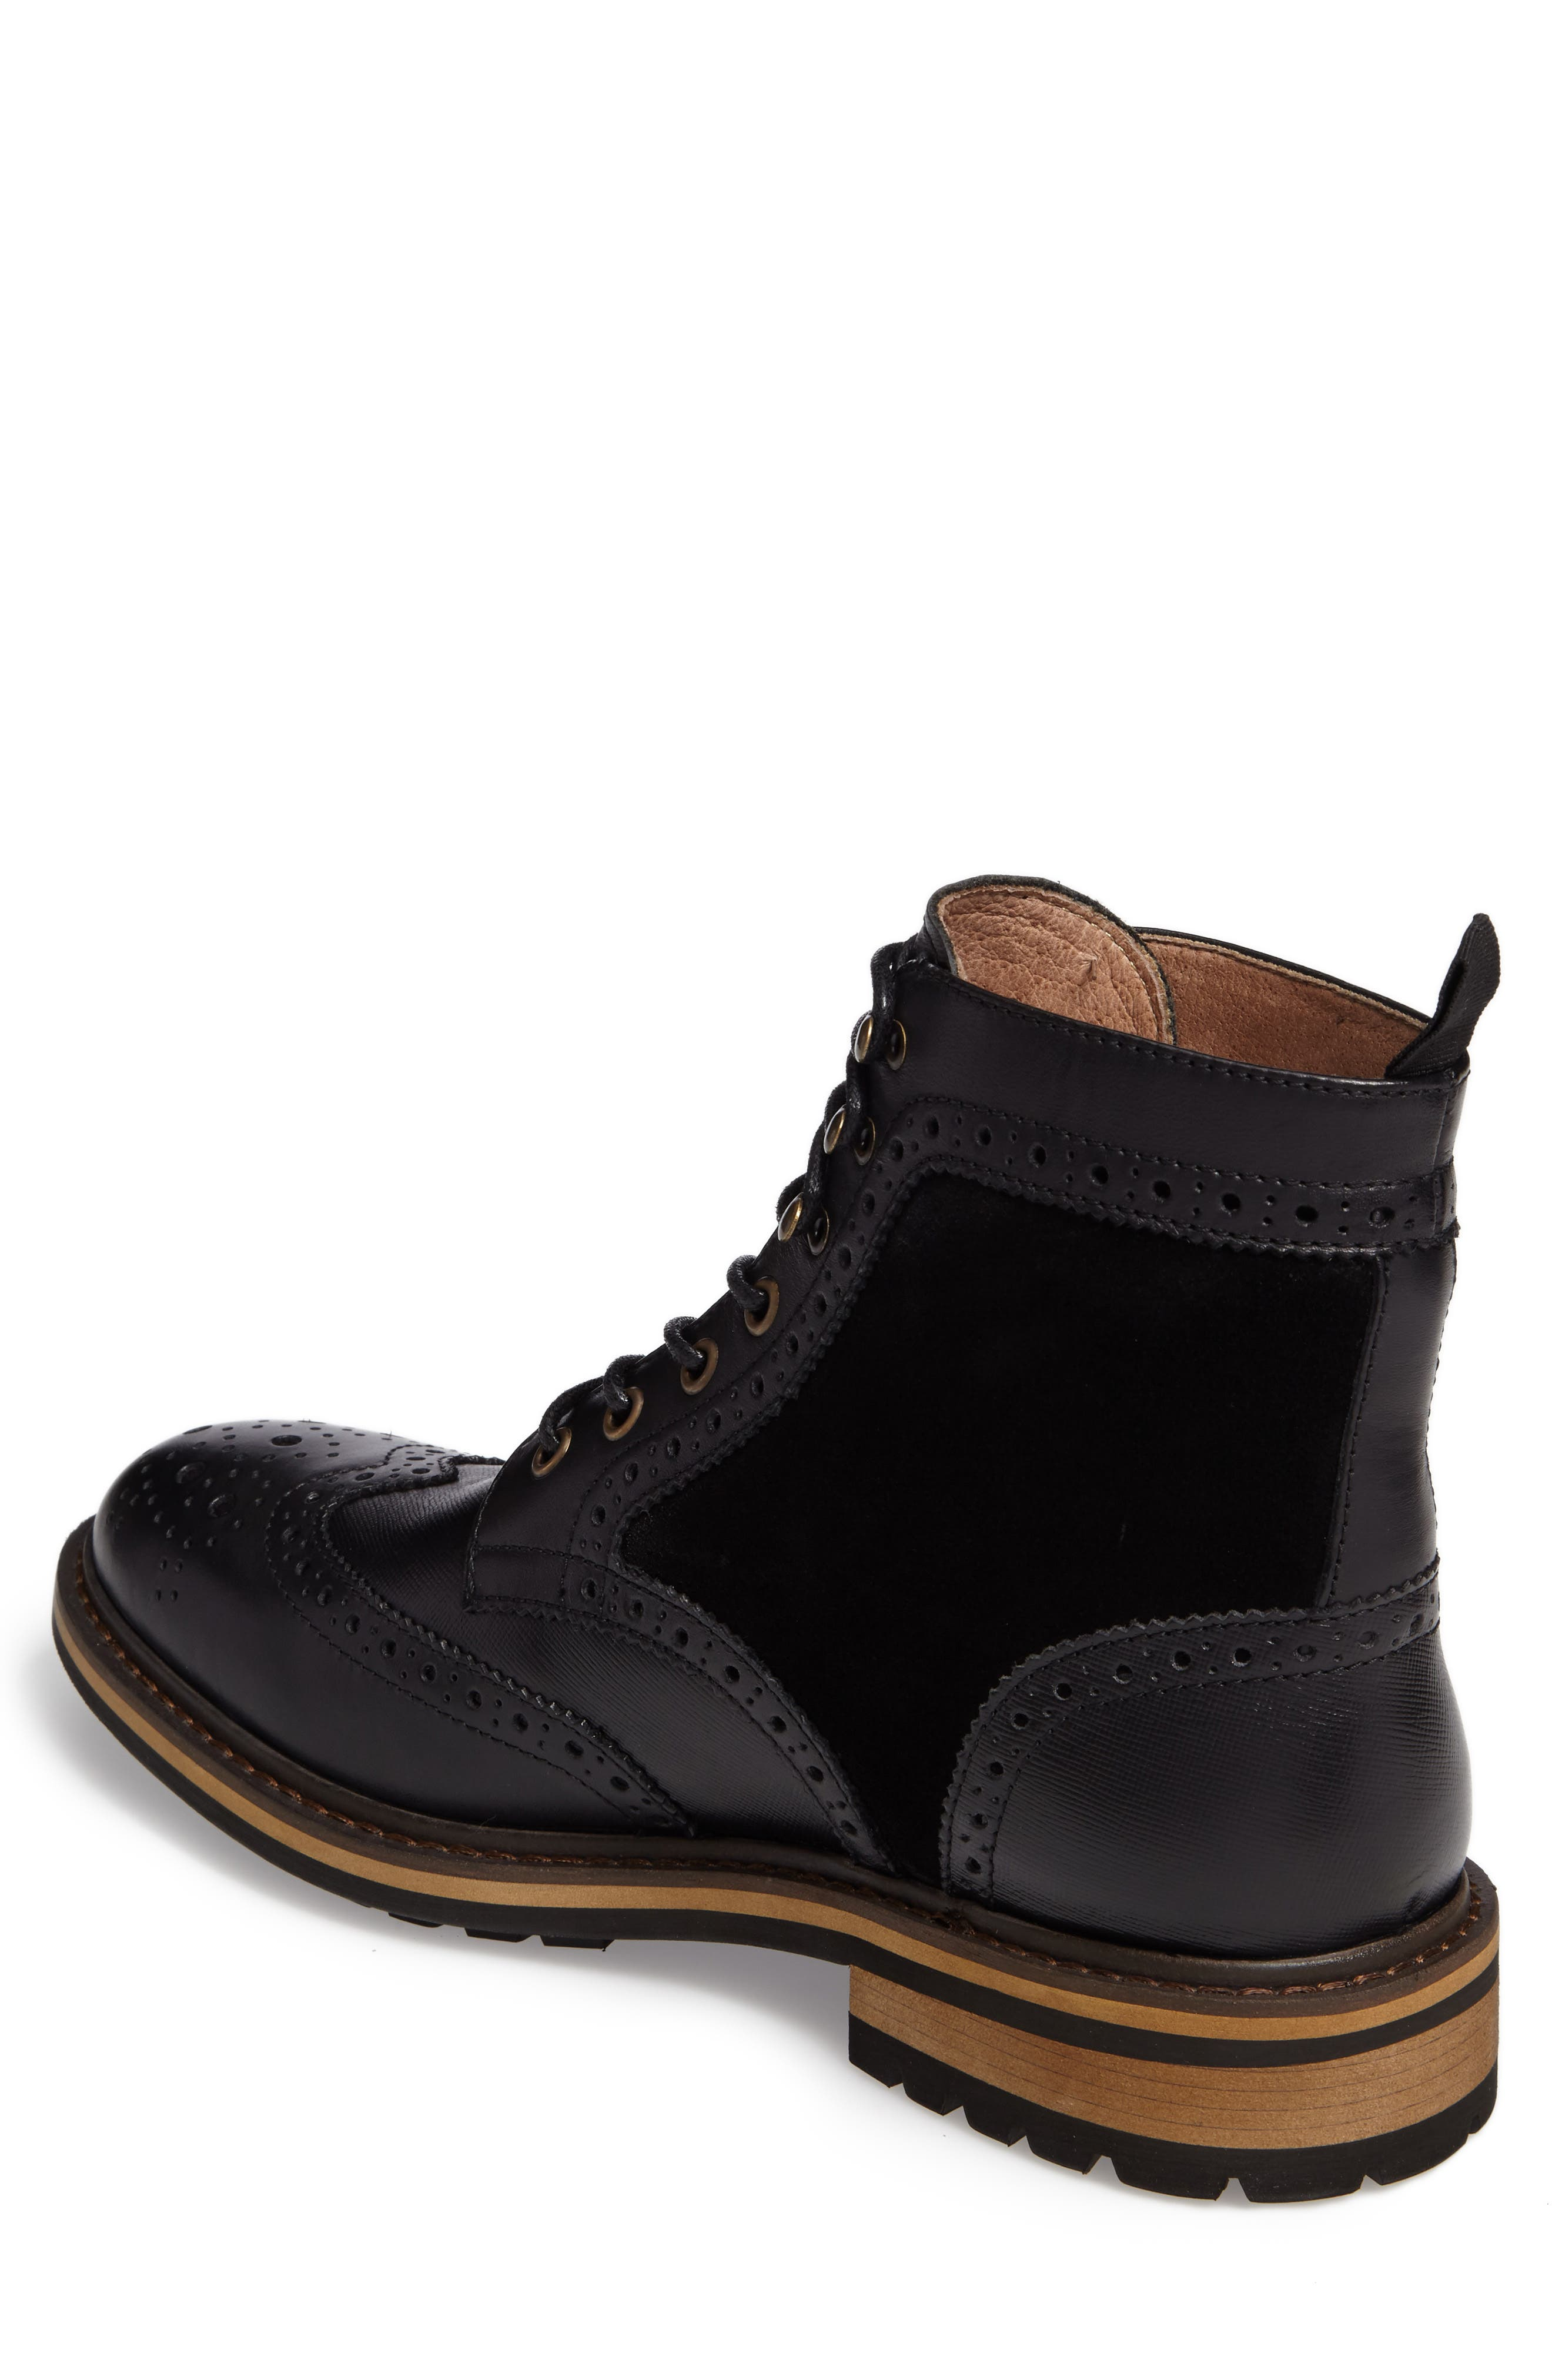 Grange Wingtip Boot,                             Alternate thumbnail 2, color,                             001